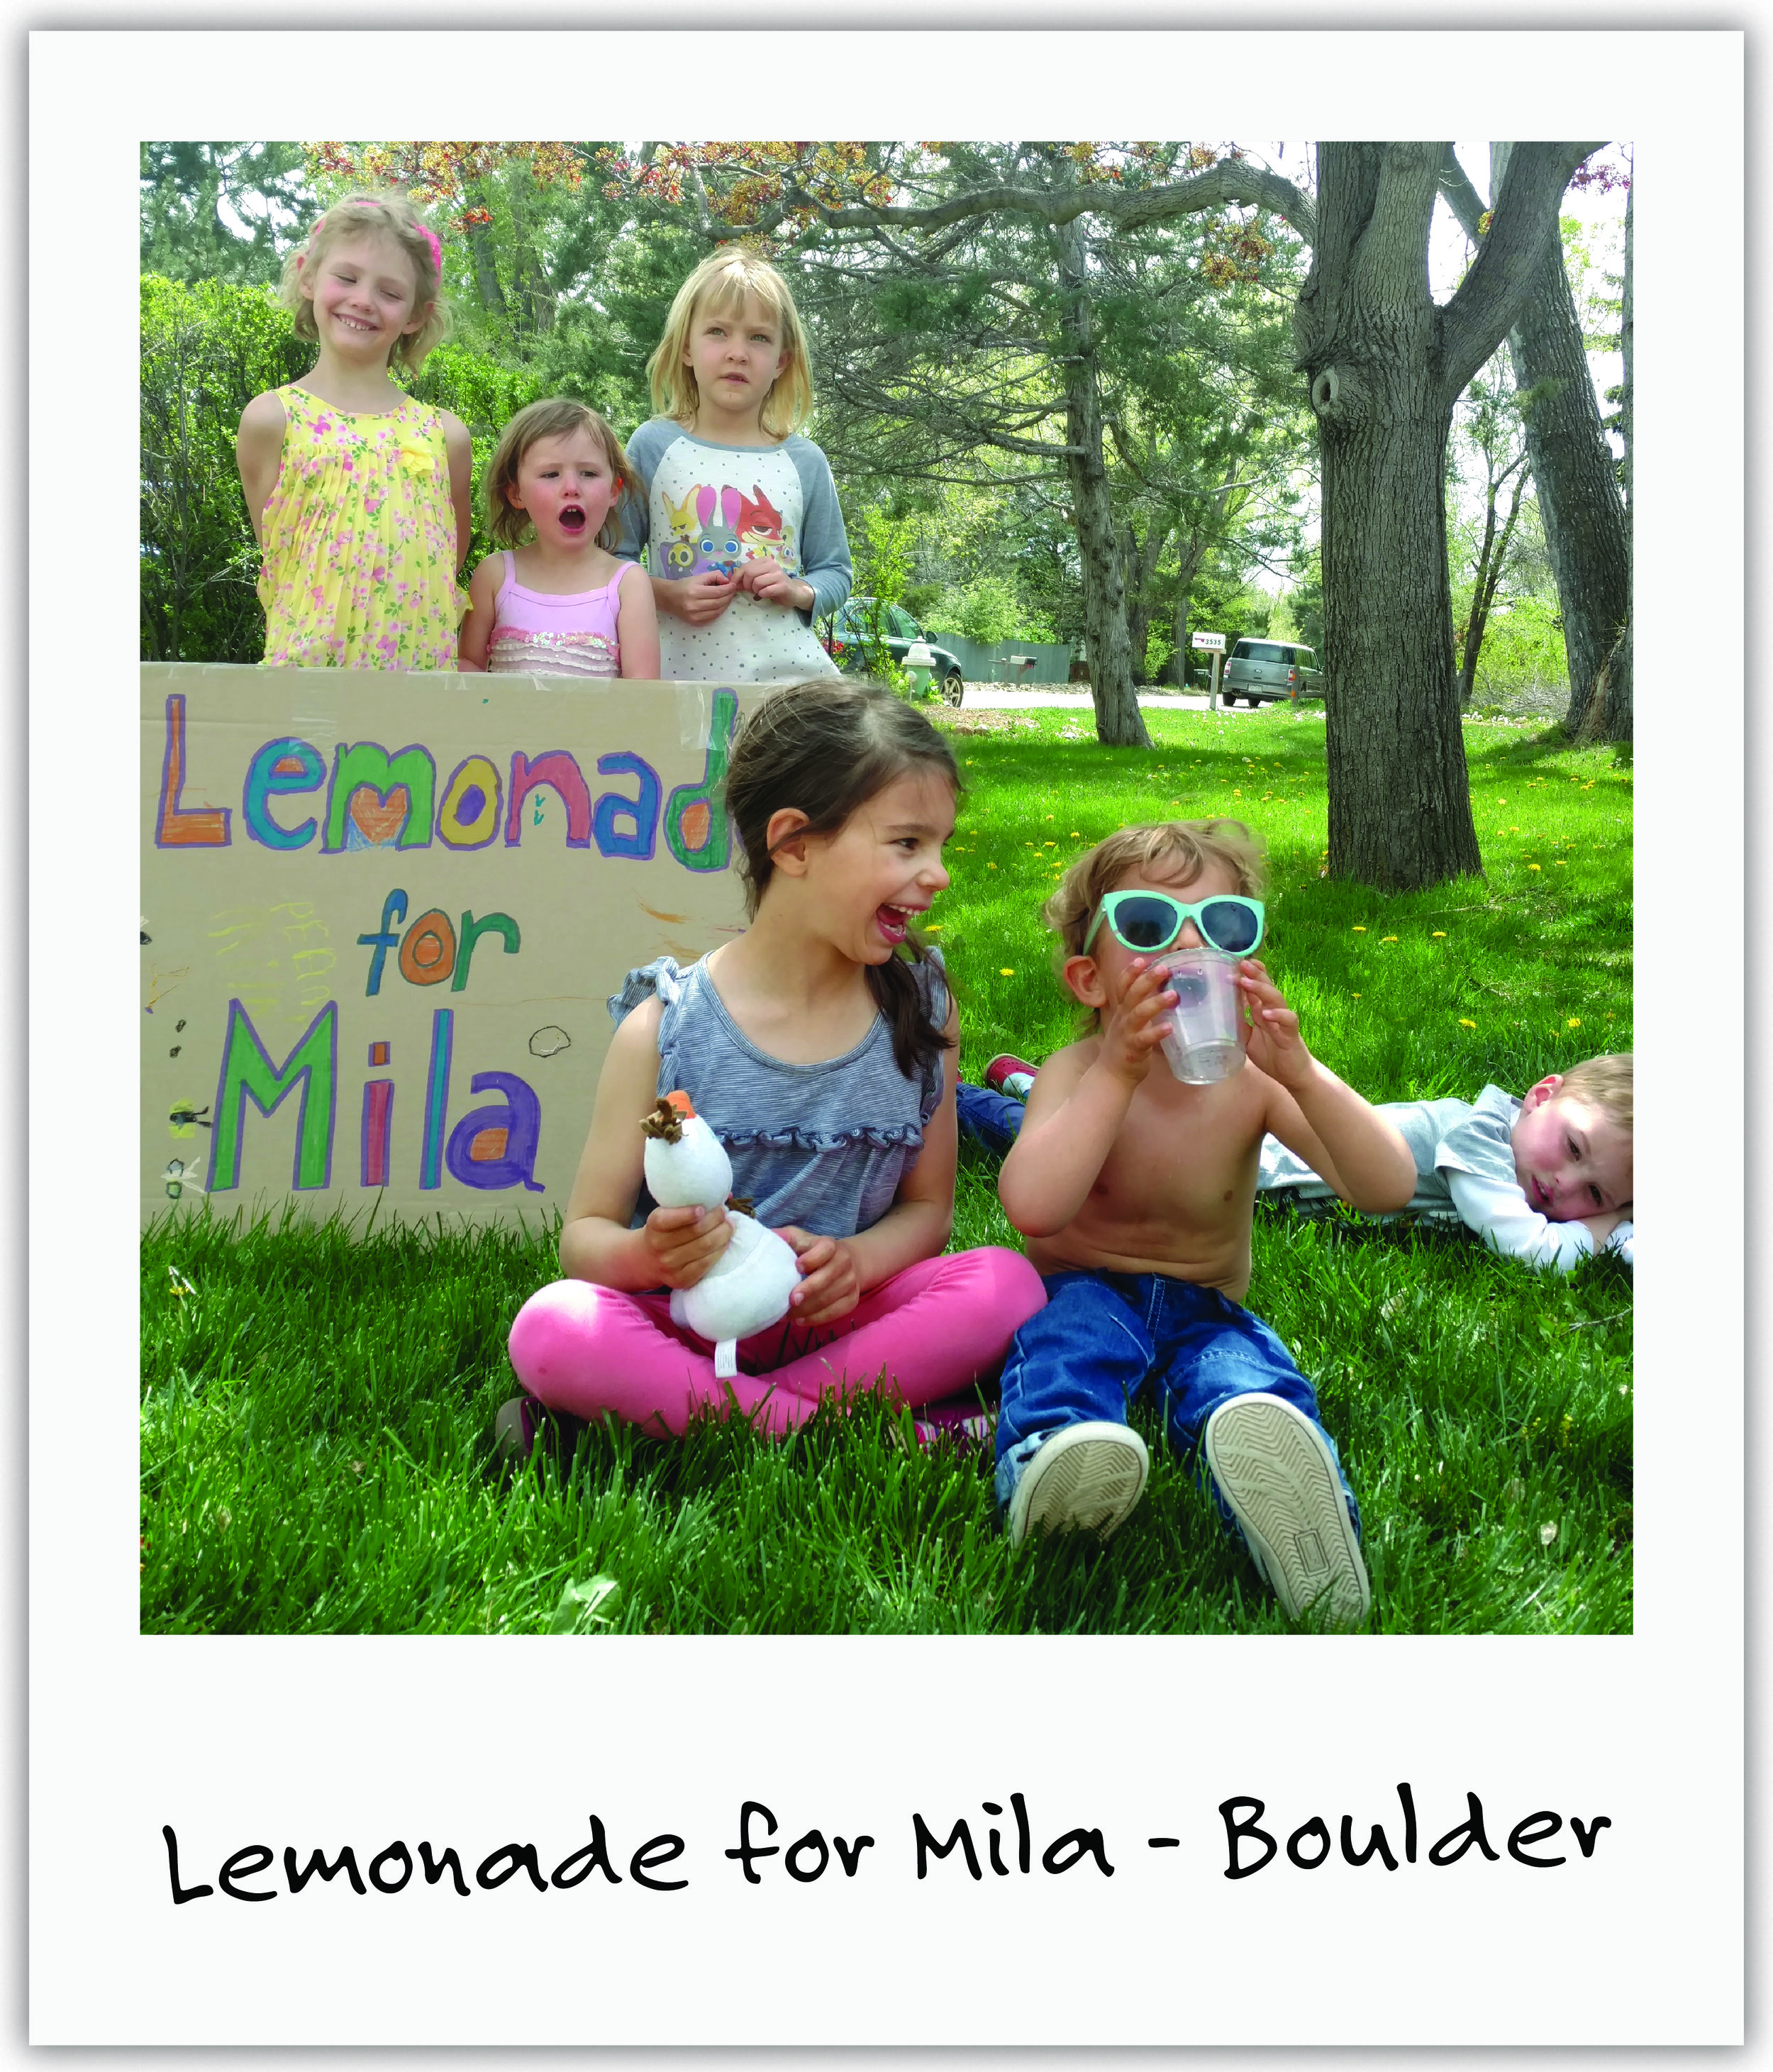 Old friends, Penny and Tilda, hand-made fresh lemonade and cookies and invited everyone they knew for their friend Mila!